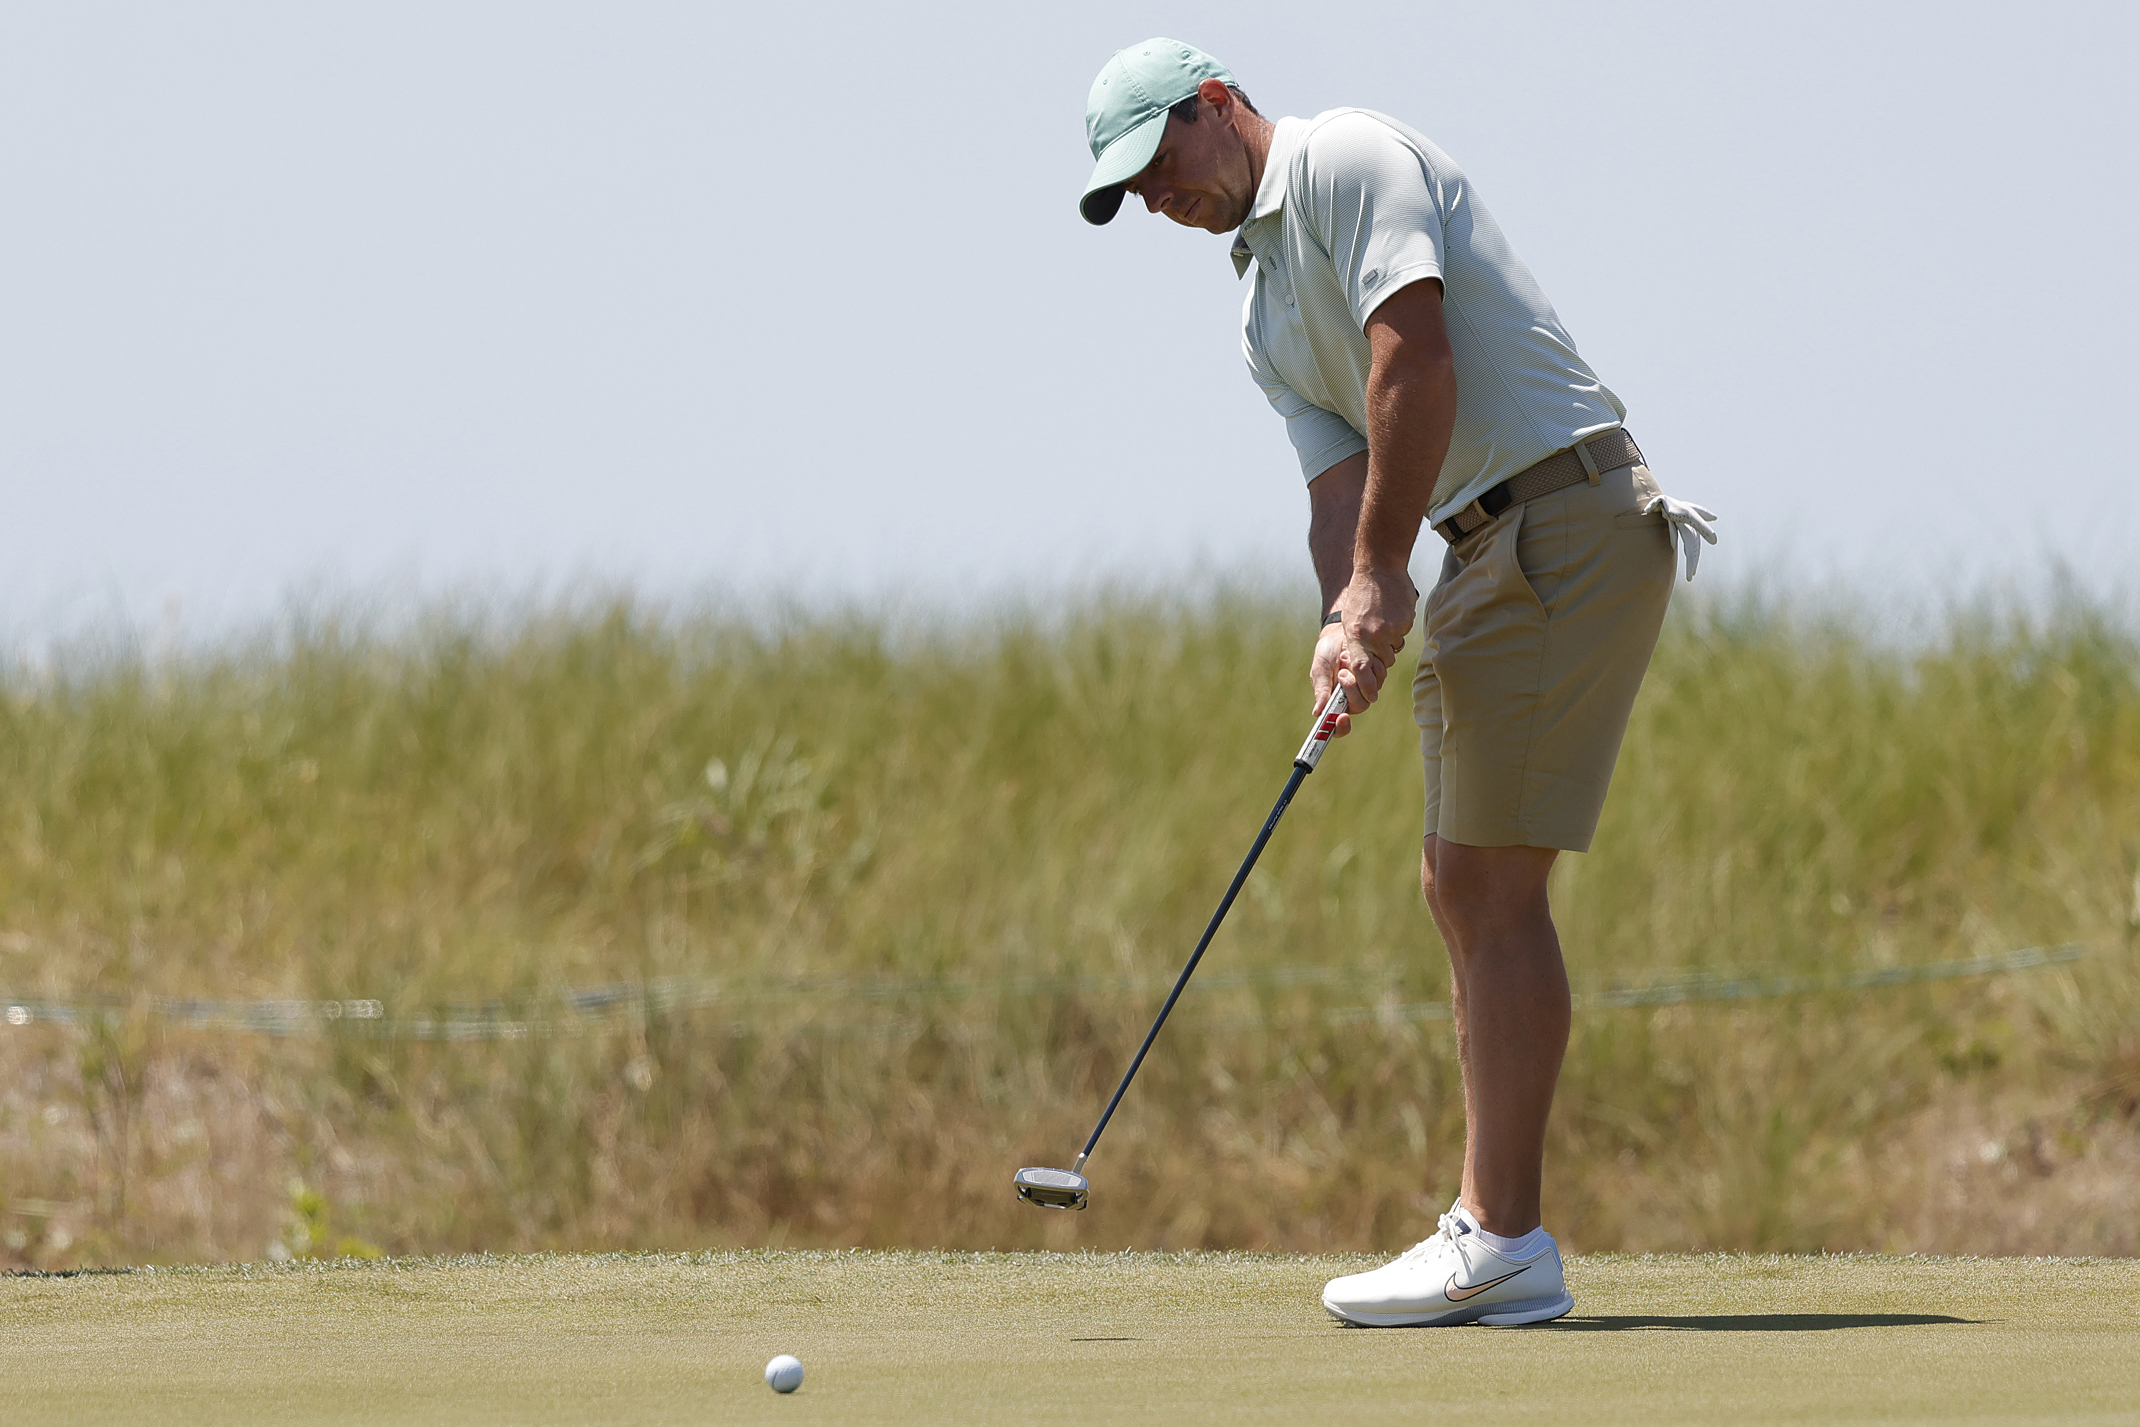 Rory McIlroy putts on the seventh hole during a practice round for the PGA Championship golf tournament at Ocean Course at Kiawah Island Resort.